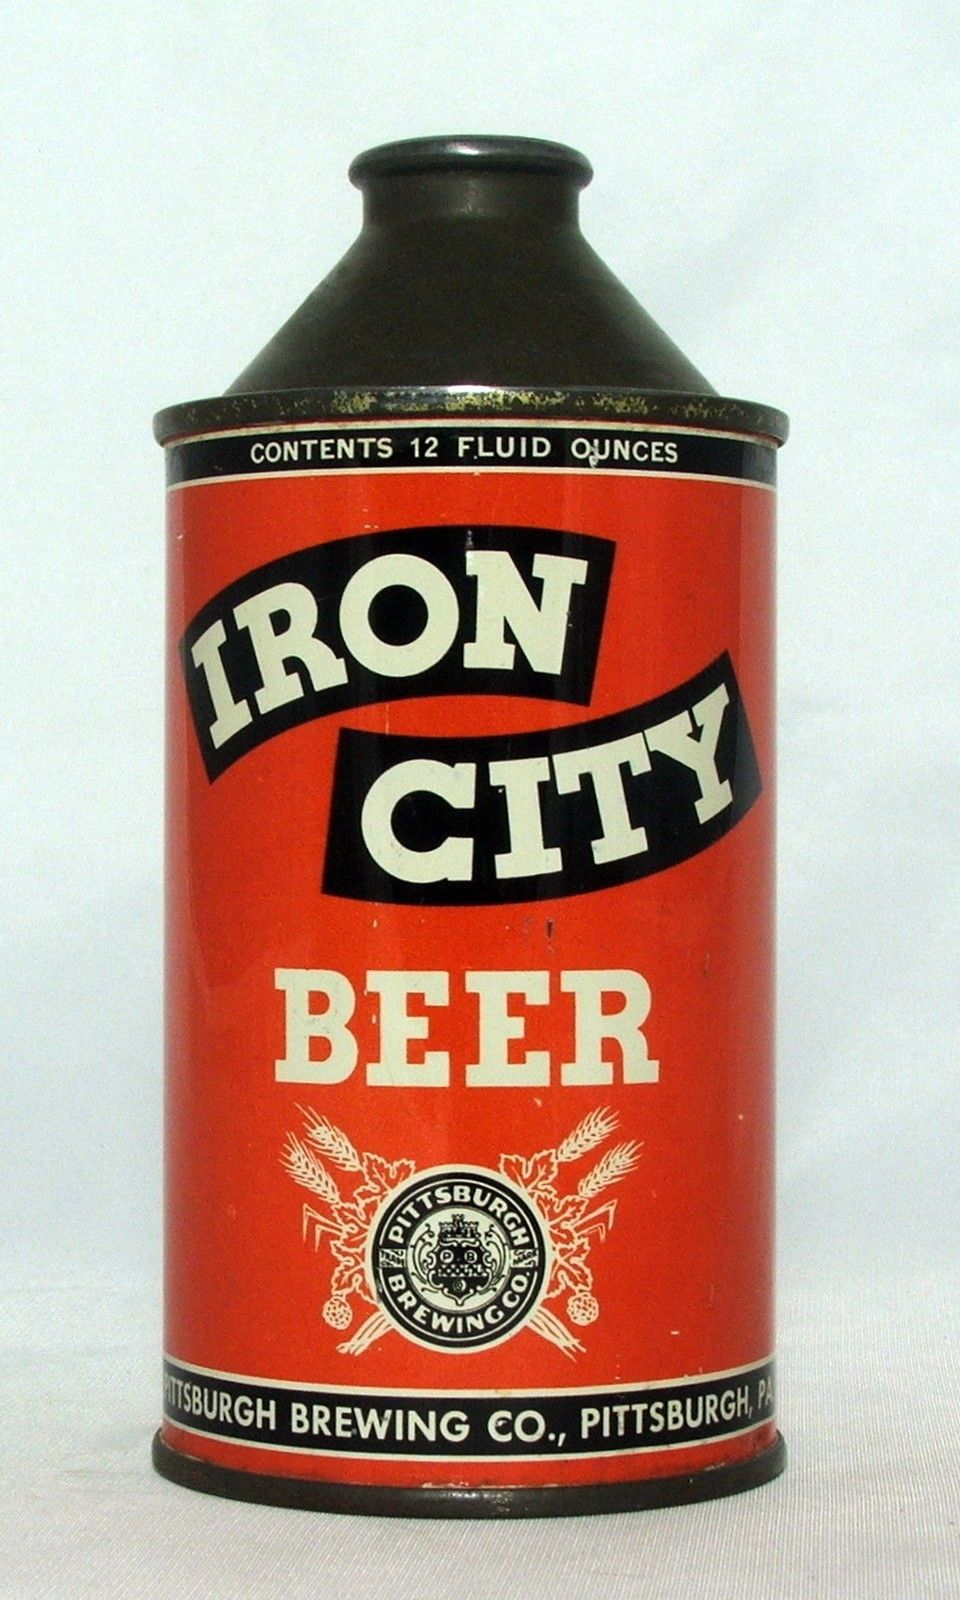 1940 S Iron City Beer12 Oz Cone Top Beer Can Pittsburgh Pa Beer Brands Iron City Beer Beer Can